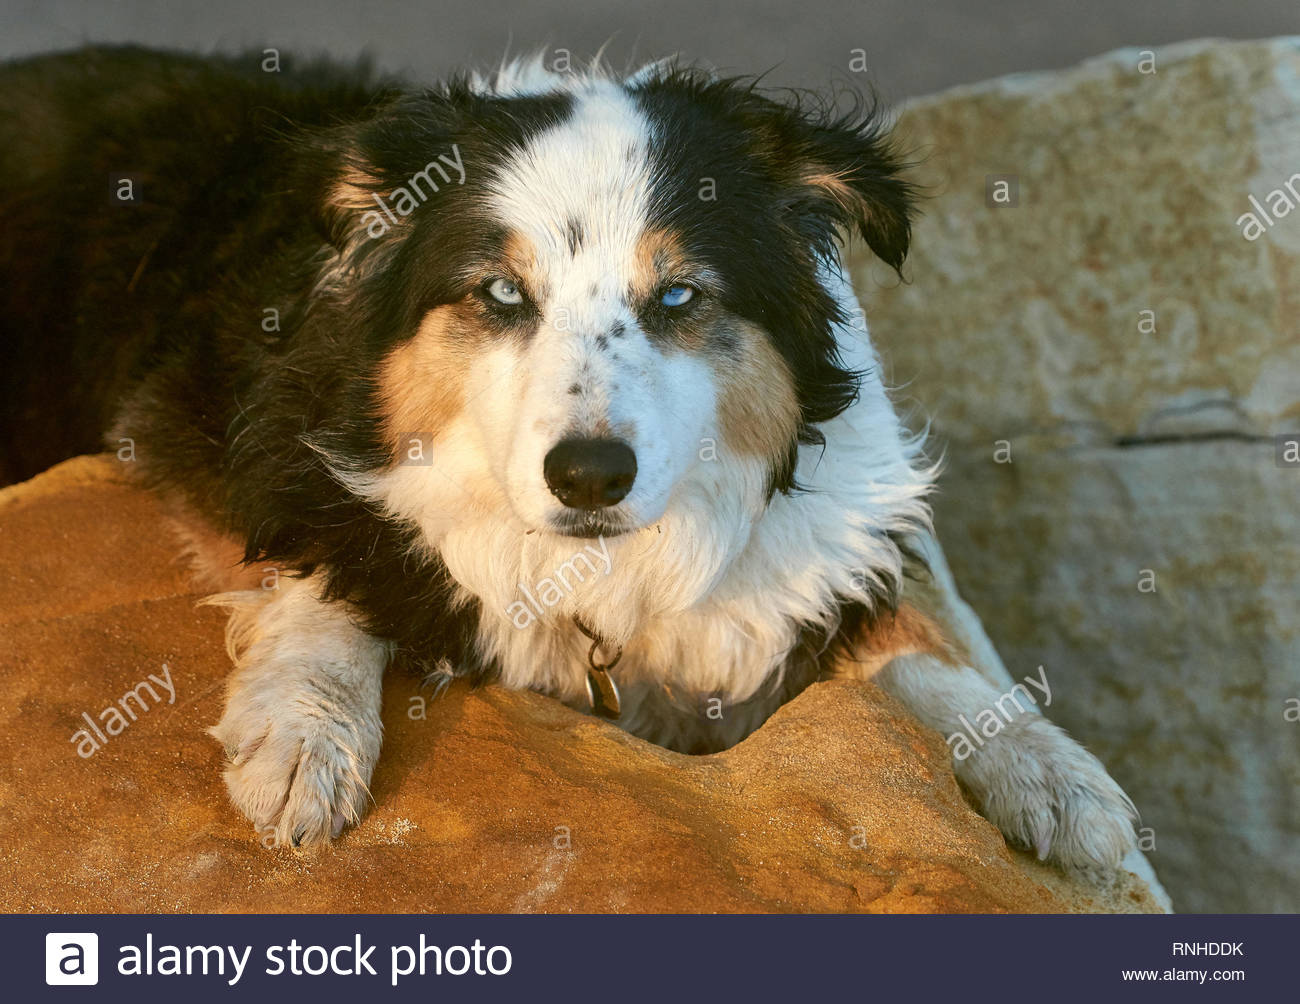 A beautiful blue-eyed tri-colored Border Collie, resting on golden sandstone boulders, looking at the camera in the golden-hour afternoon sunlight. - Stock Image